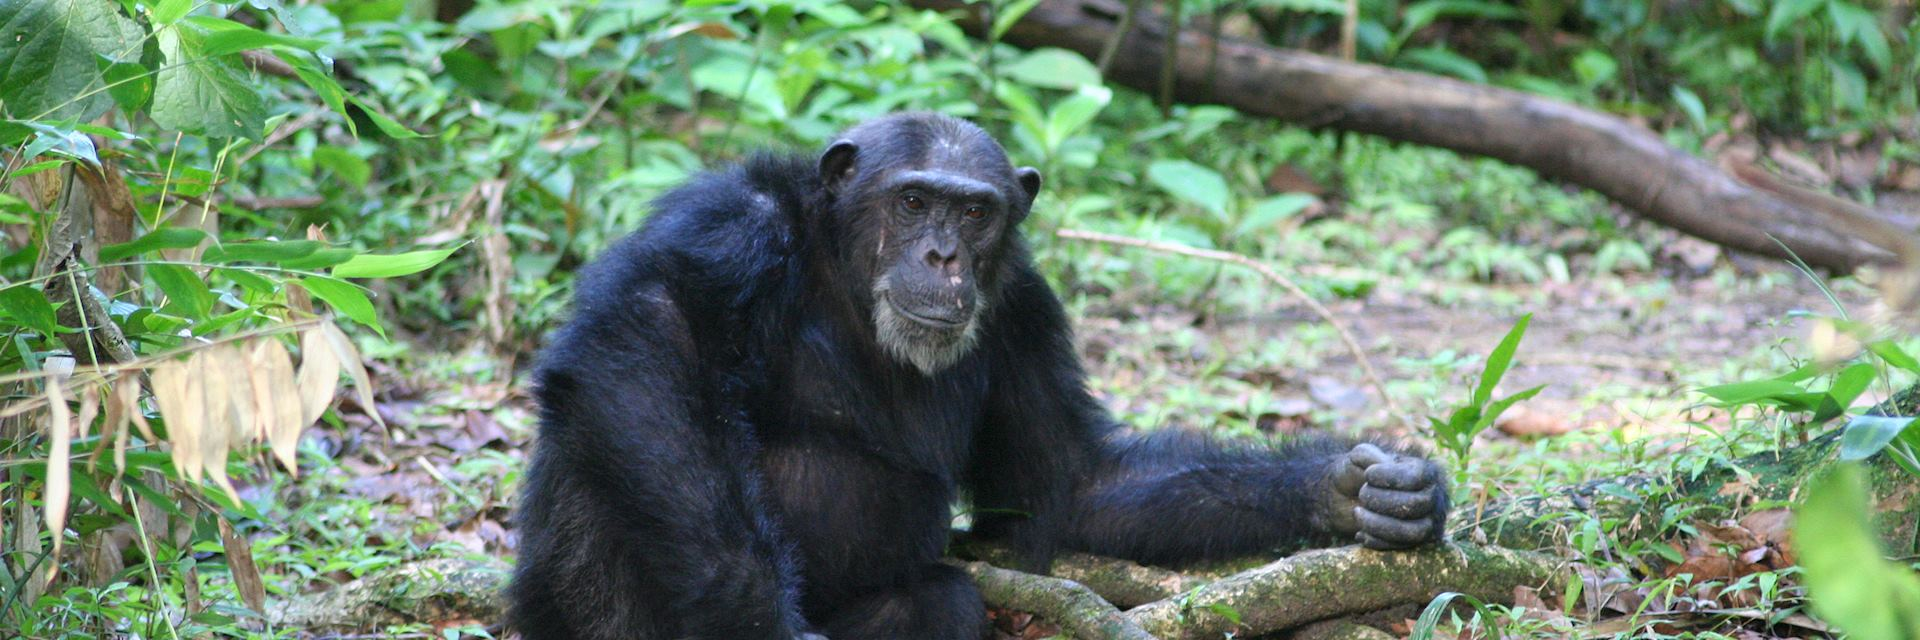 Chimpanzee in the Mahale Mountains National Park, Tanzania